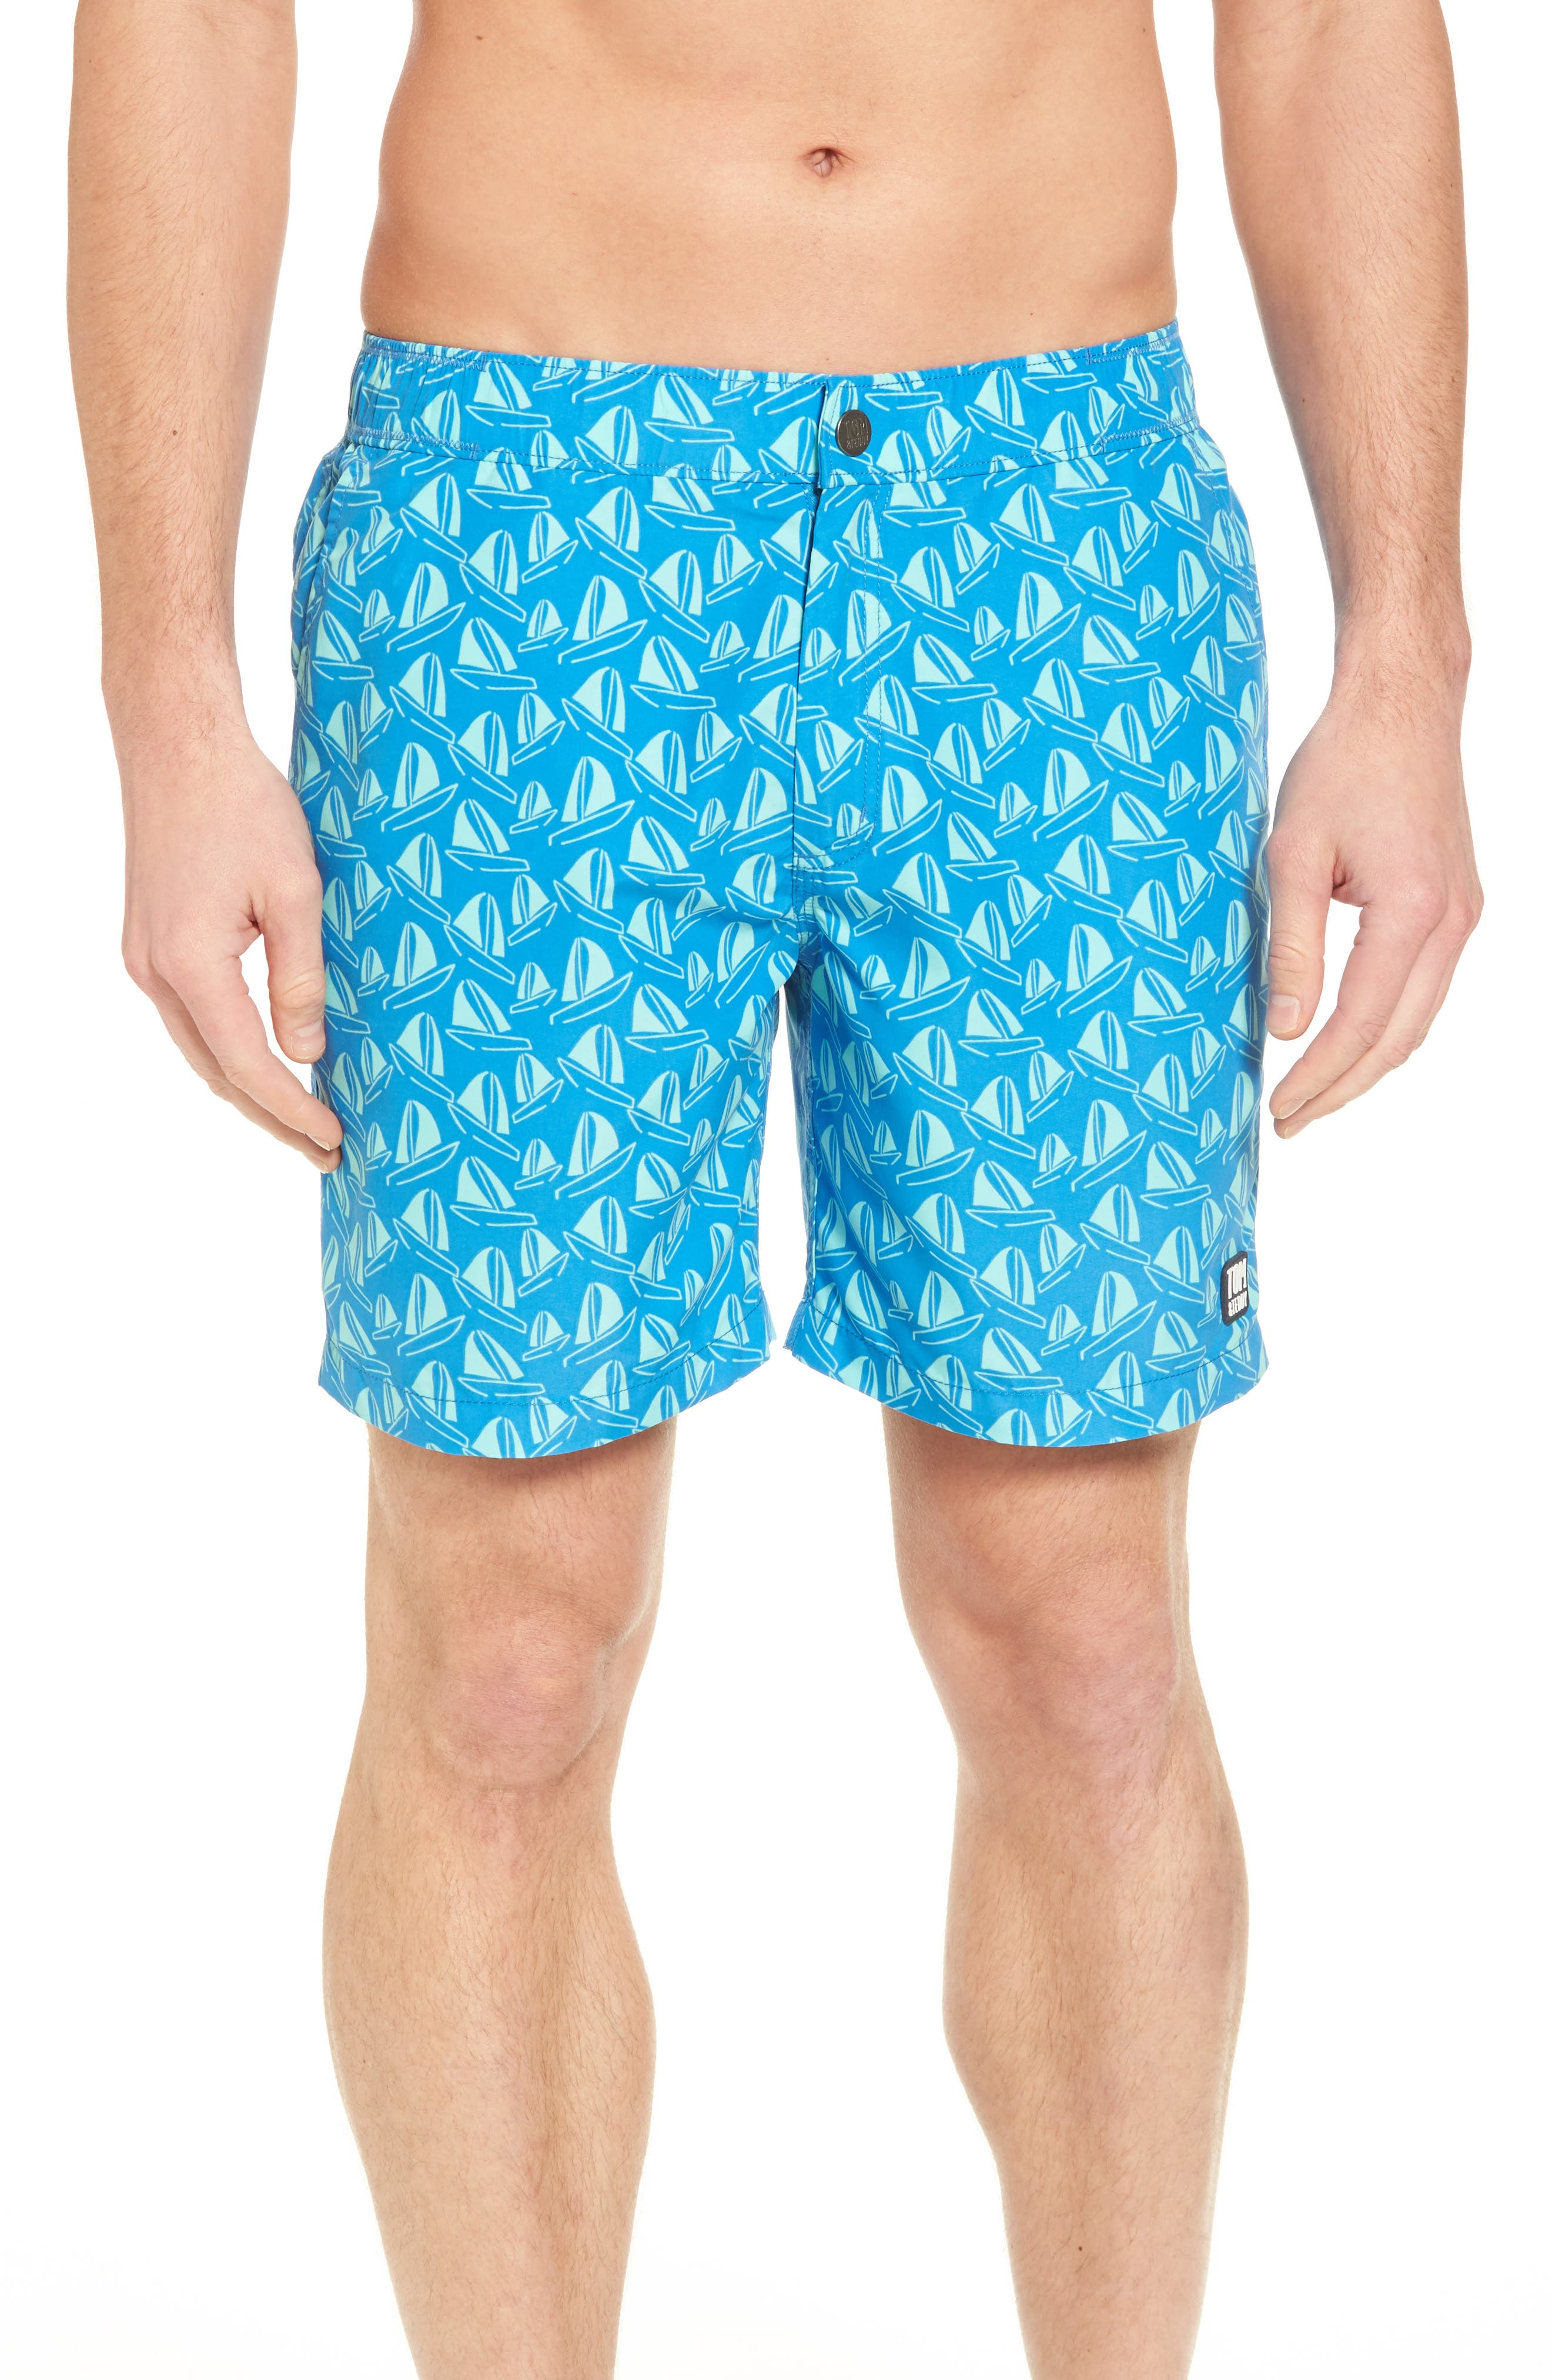 Boat Print Swim Trunks,                         Main,                         color, French Blue And Sky